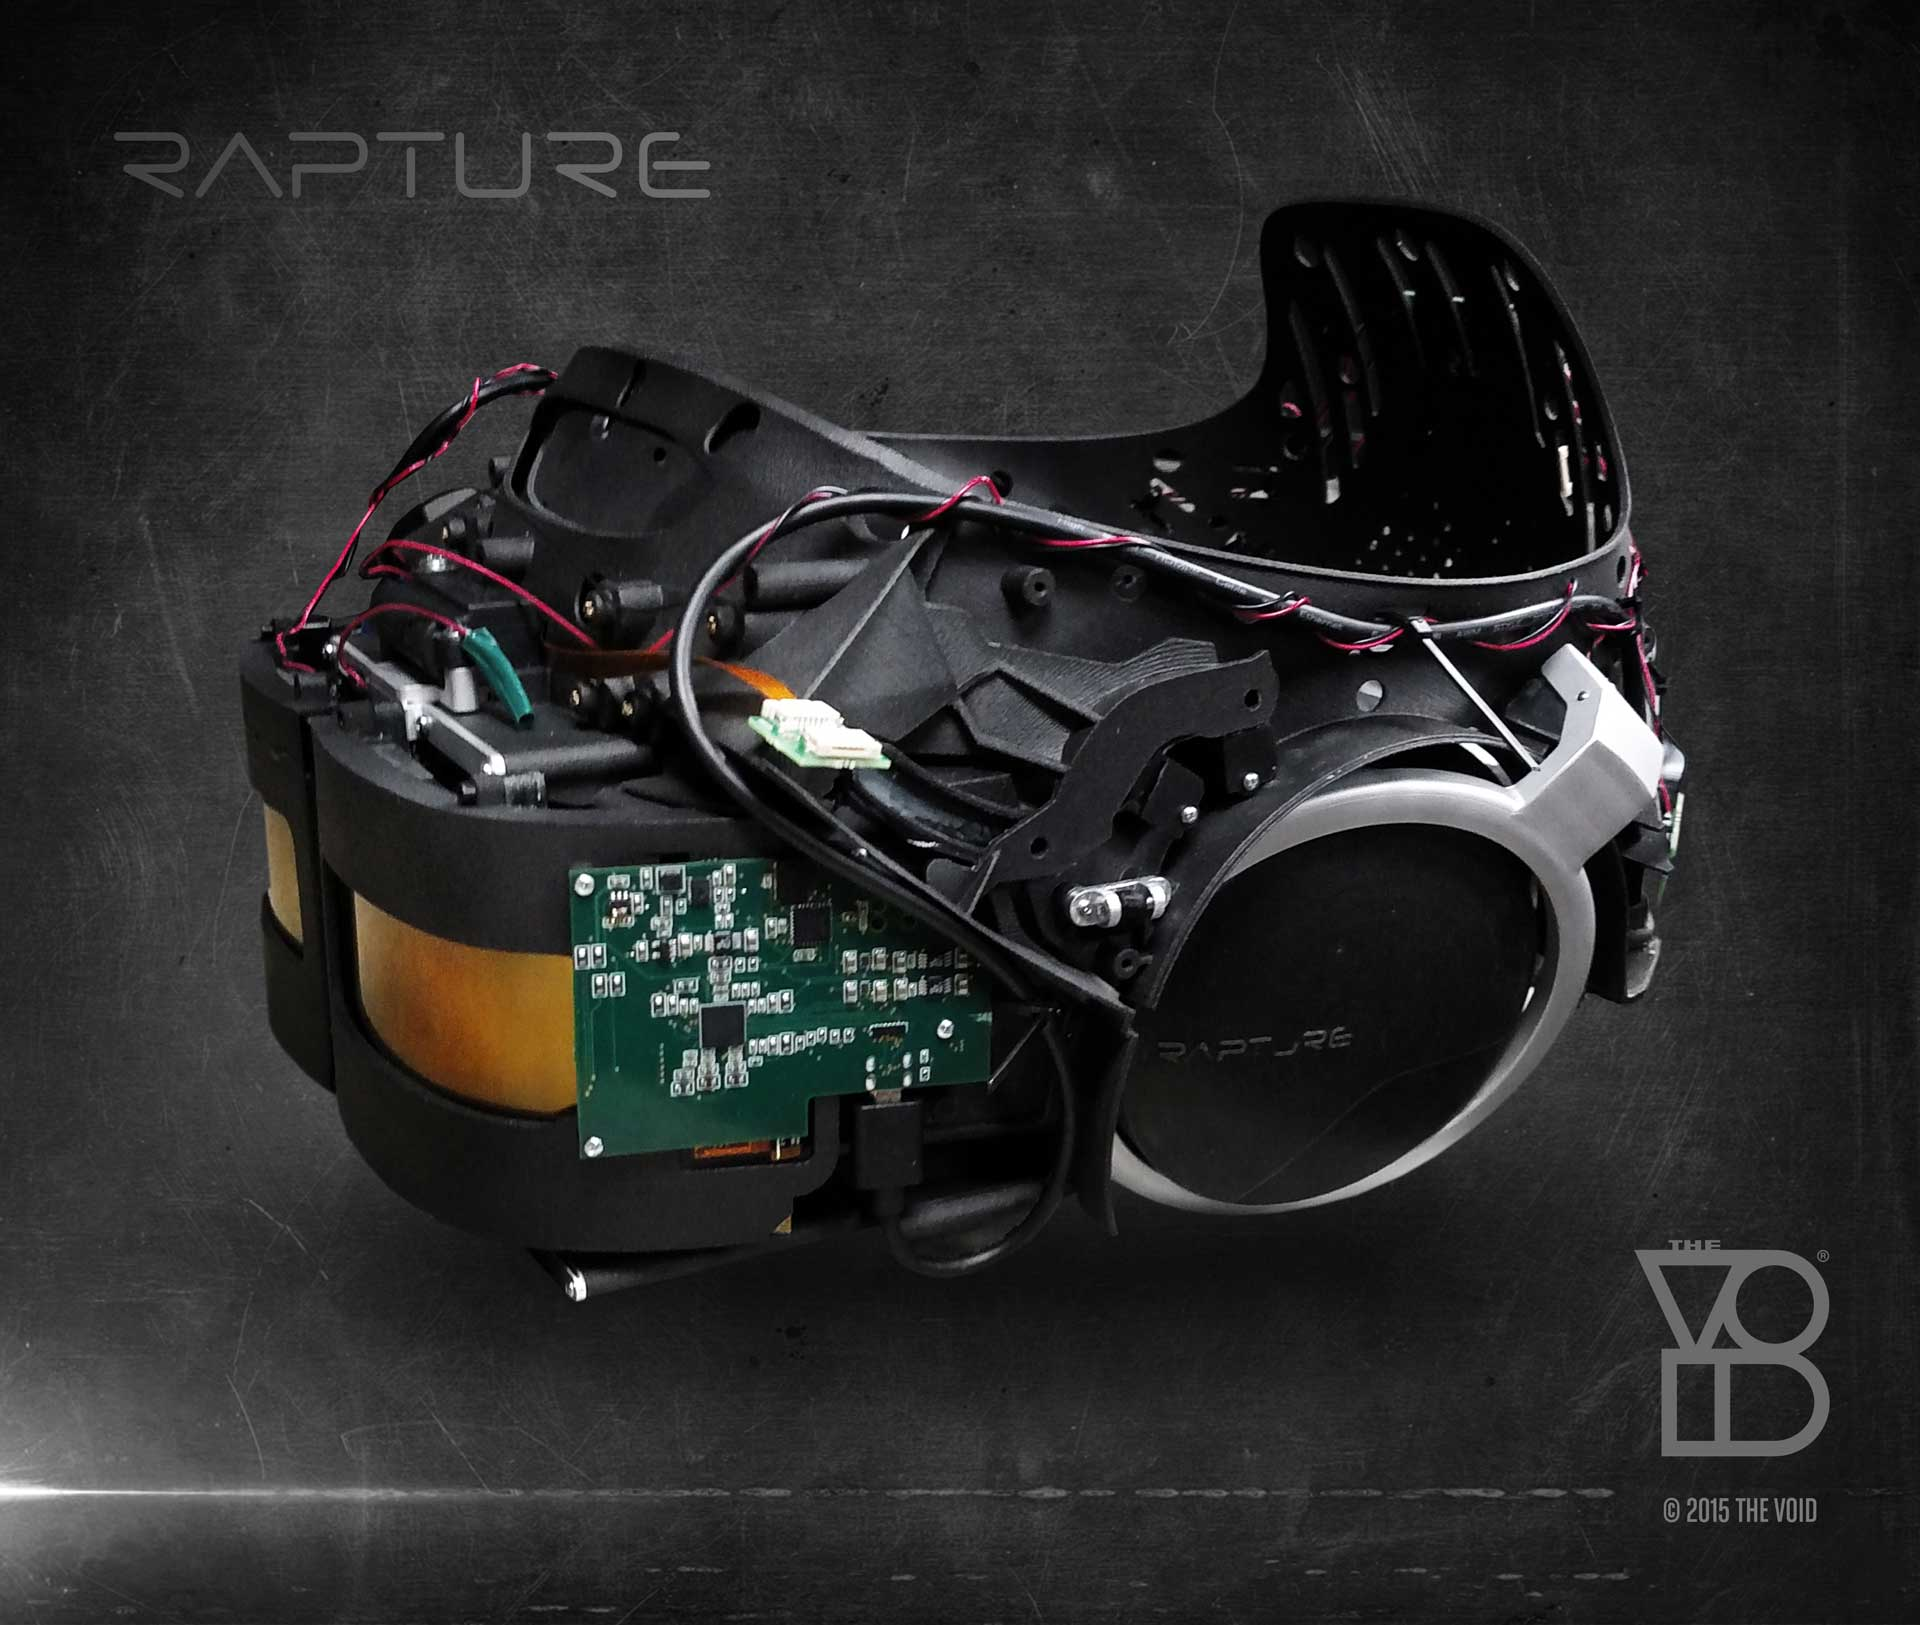 Step Into The Light Vr: First Look: The Void's 2K 'Rapture' VR Headset